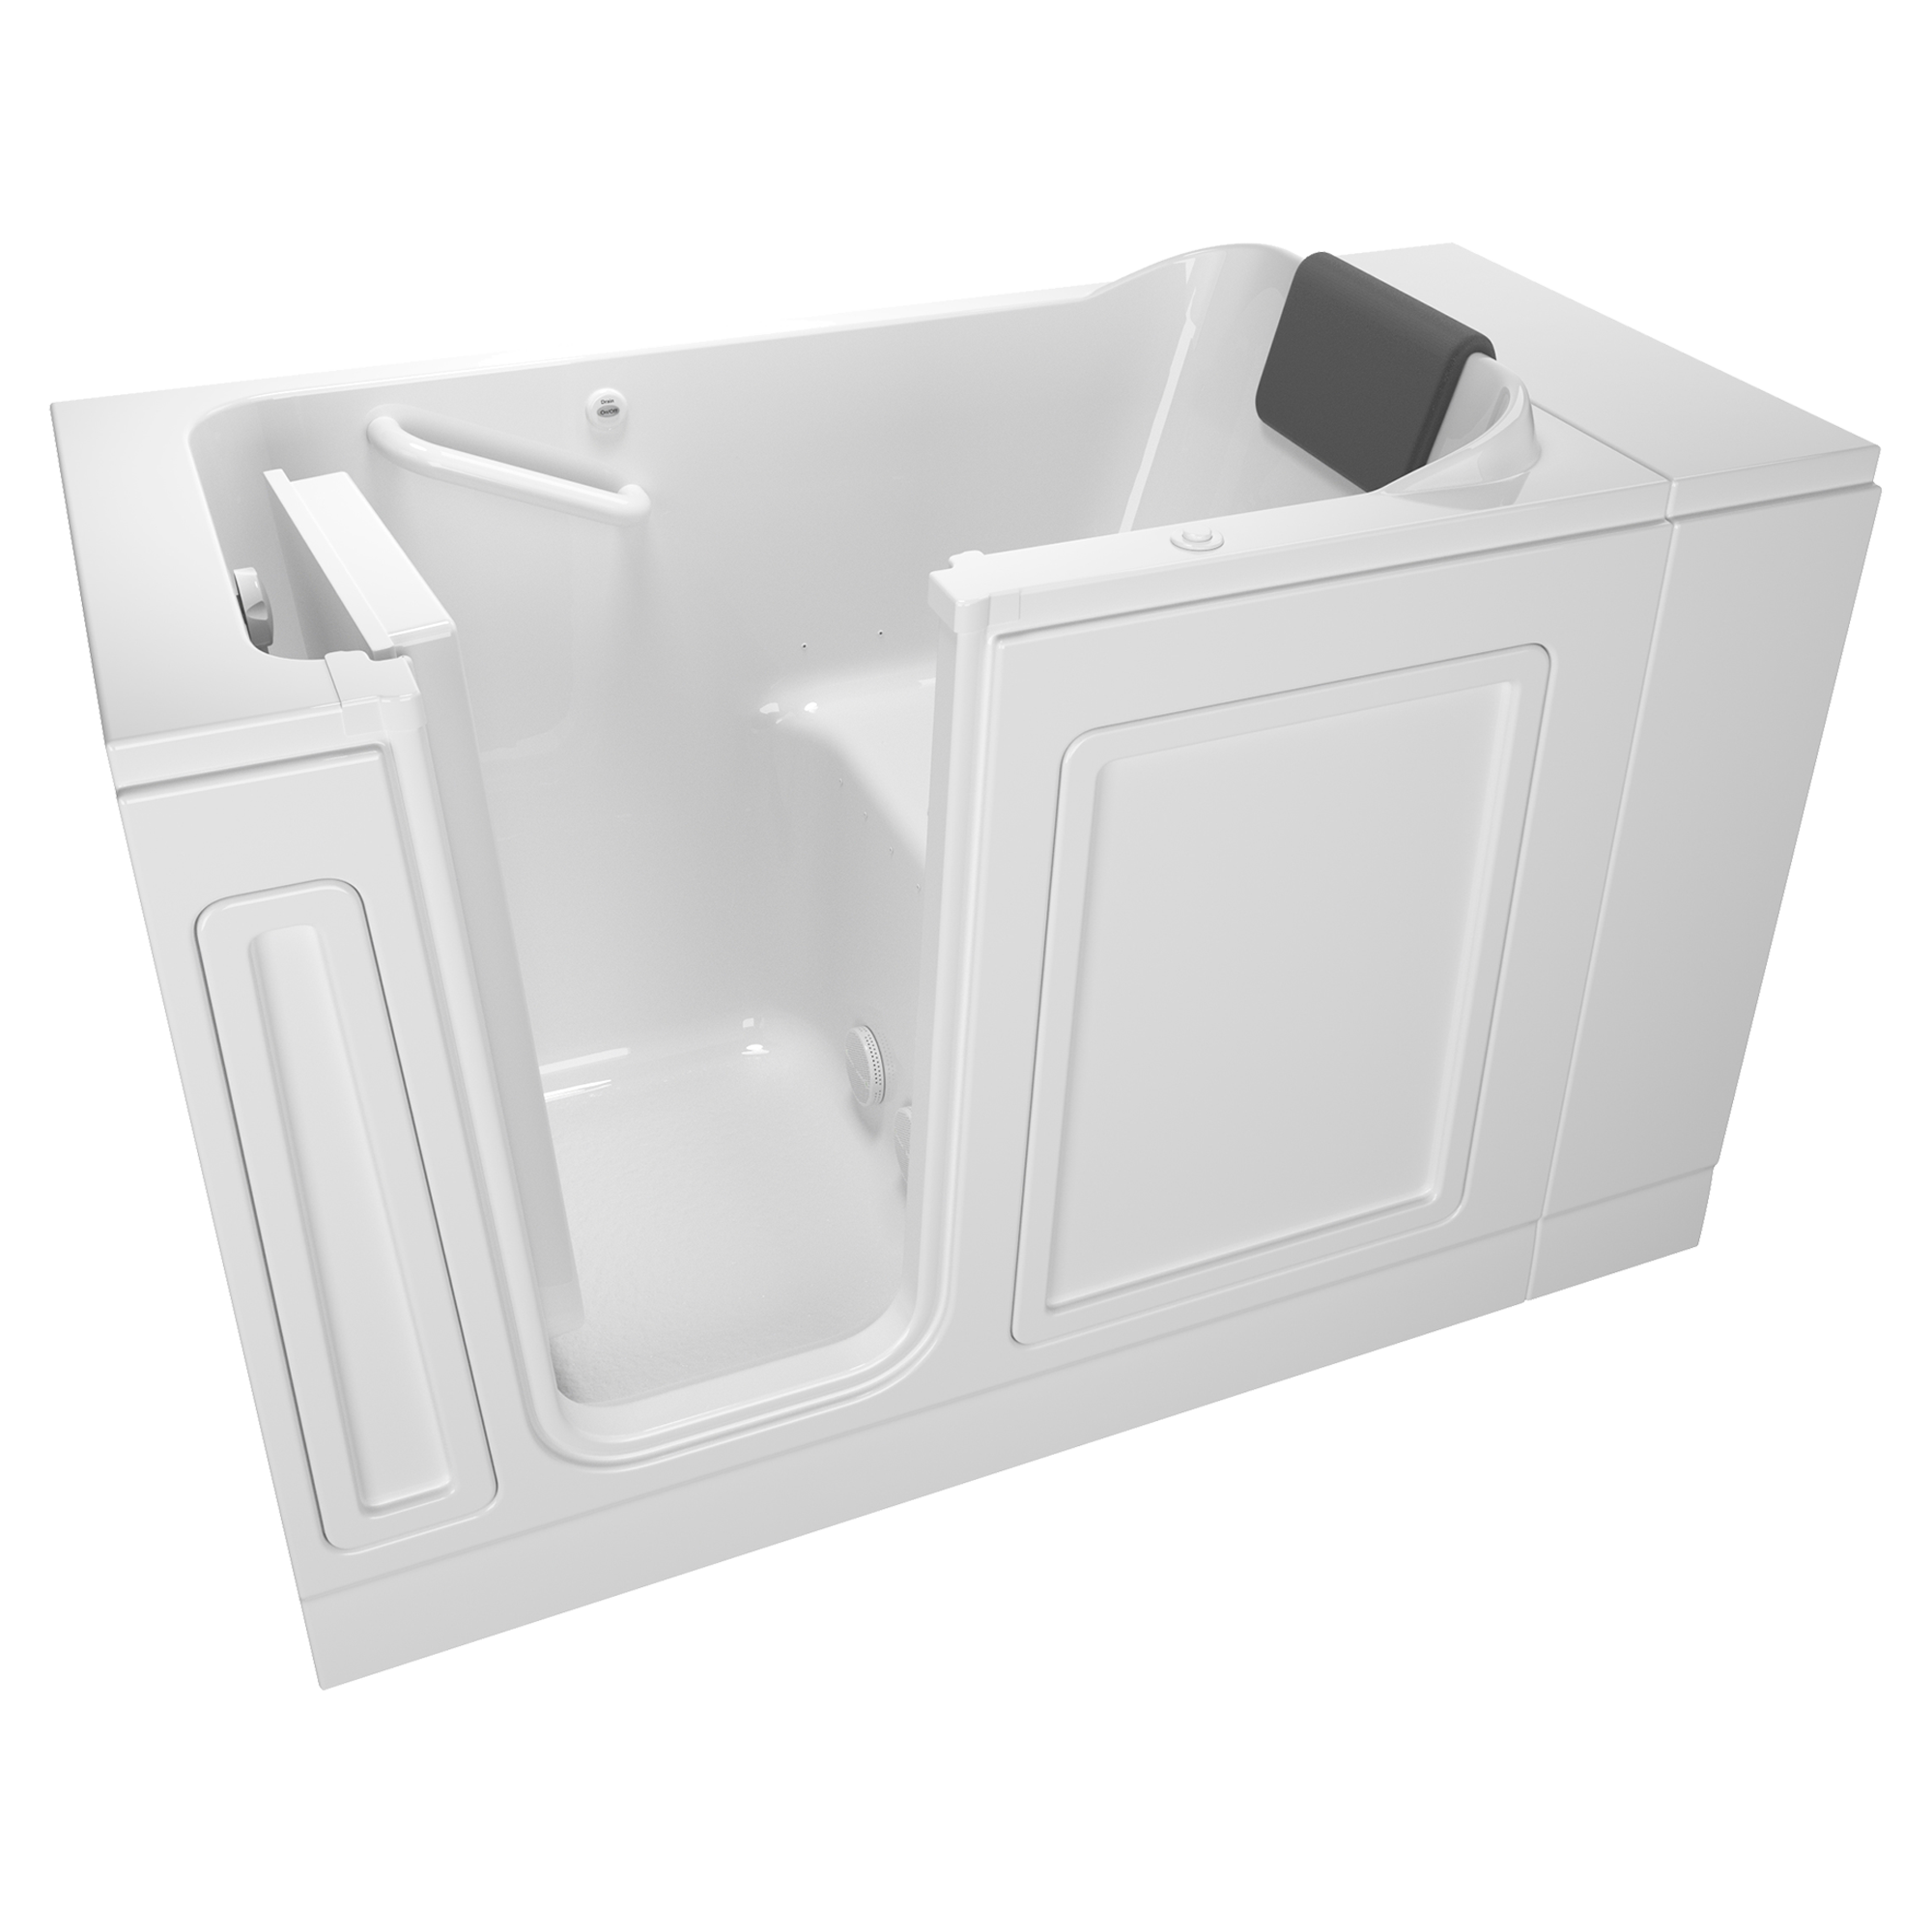 clip royalty free stock Transparent bathtub small plastic. Walk in baths by